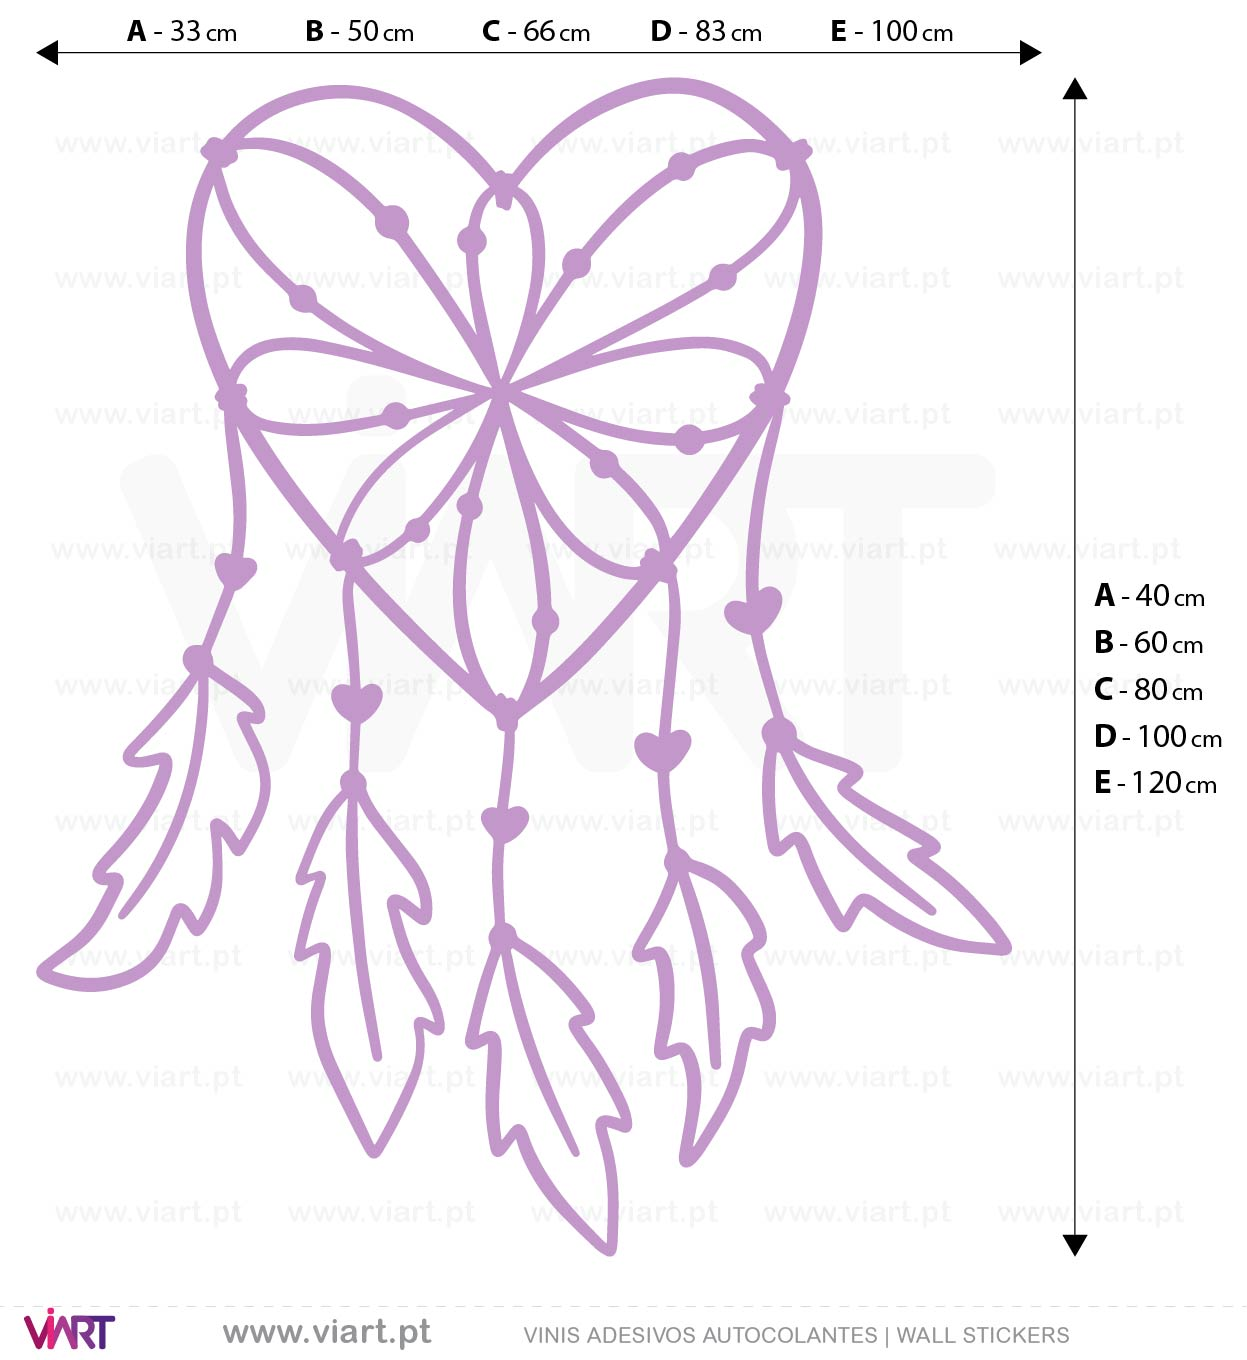 Viart - WALL STICKERS - Dreamcatcher! Decal! Measures